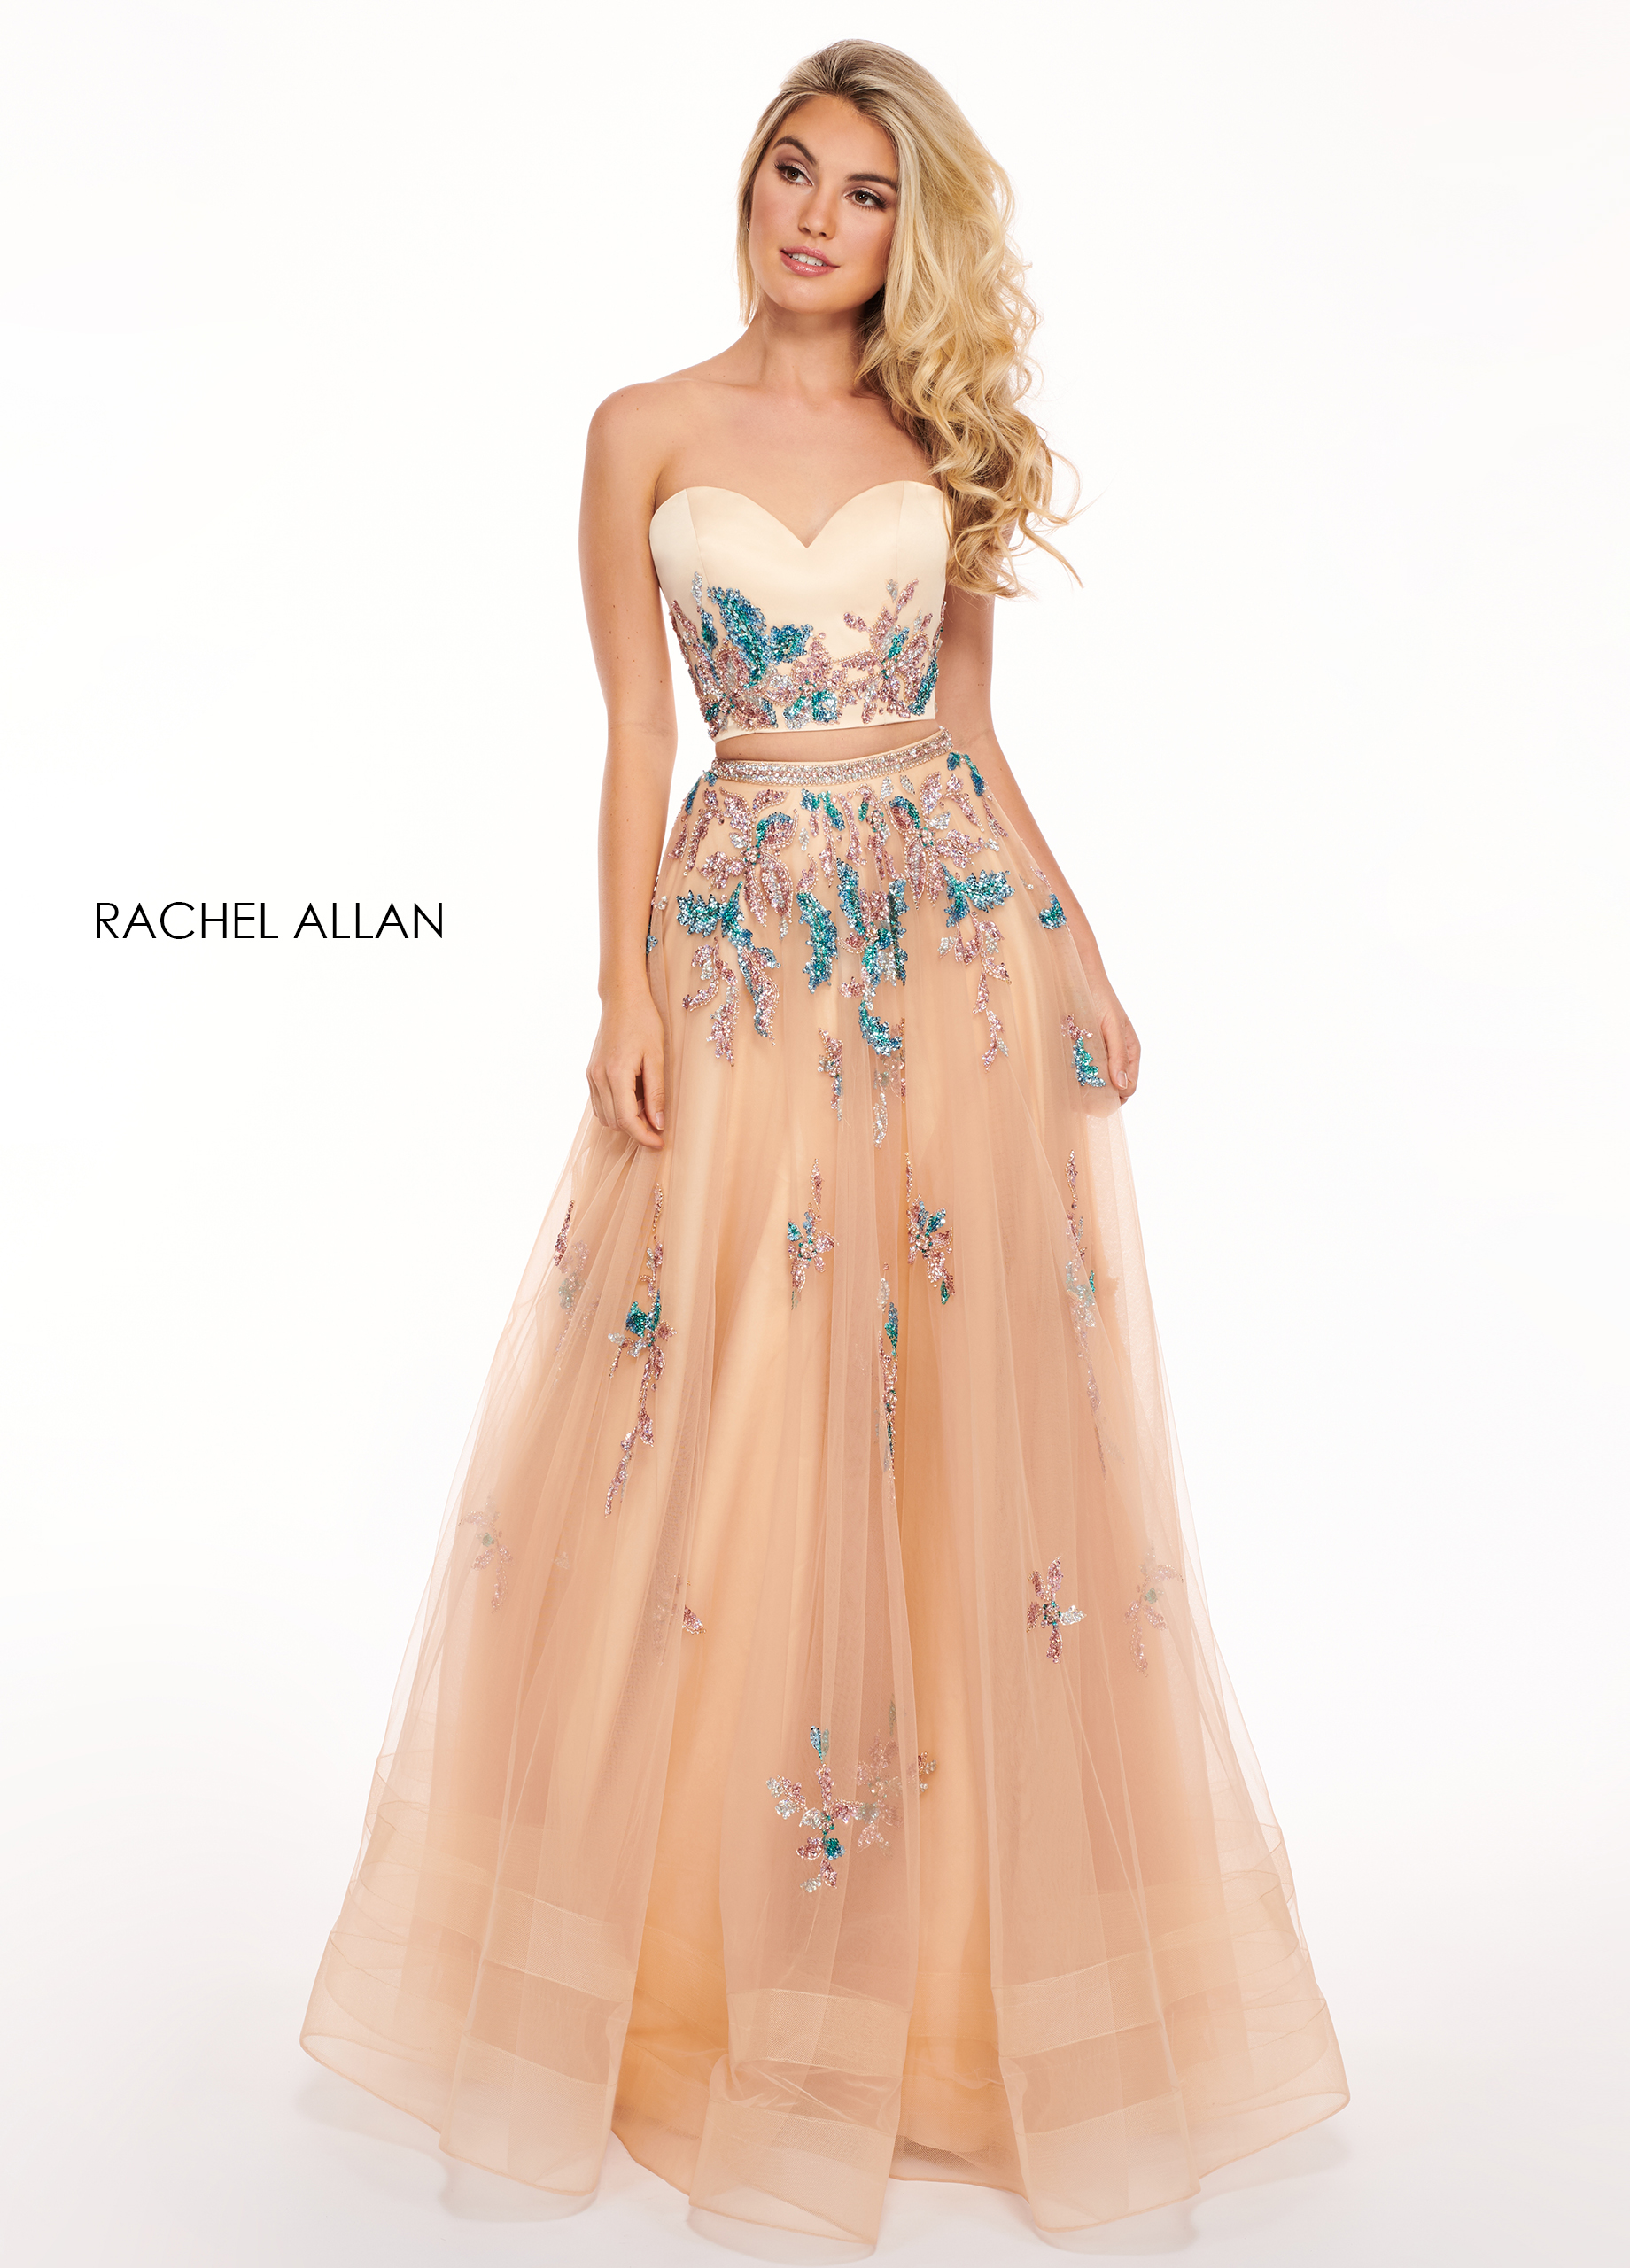 Strapless Two-Piece Prom Dresses in Nude Color